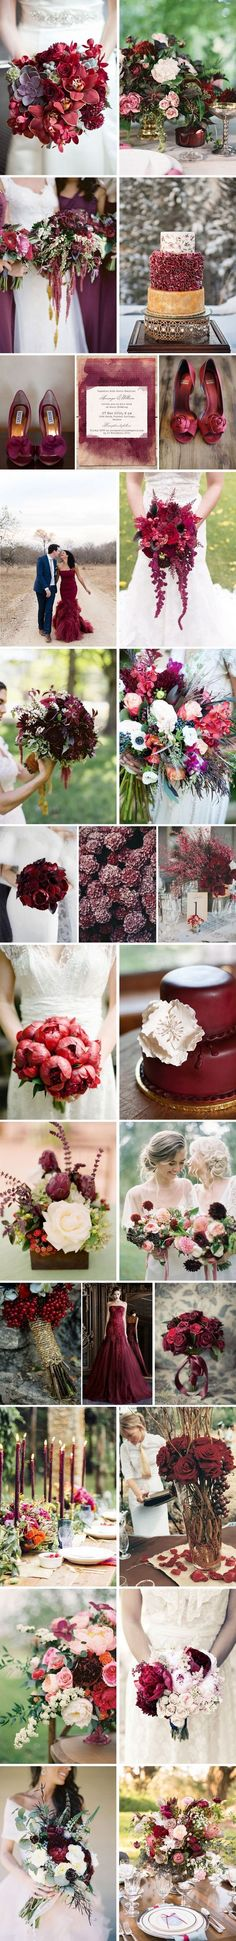 35 {Aubergine and Marsala} Classic Fall Wedding Color Ideas | http://www.deerpearlflowers.com/35-aubergine-marsala-classic-fall-wedding-color-ideas/: